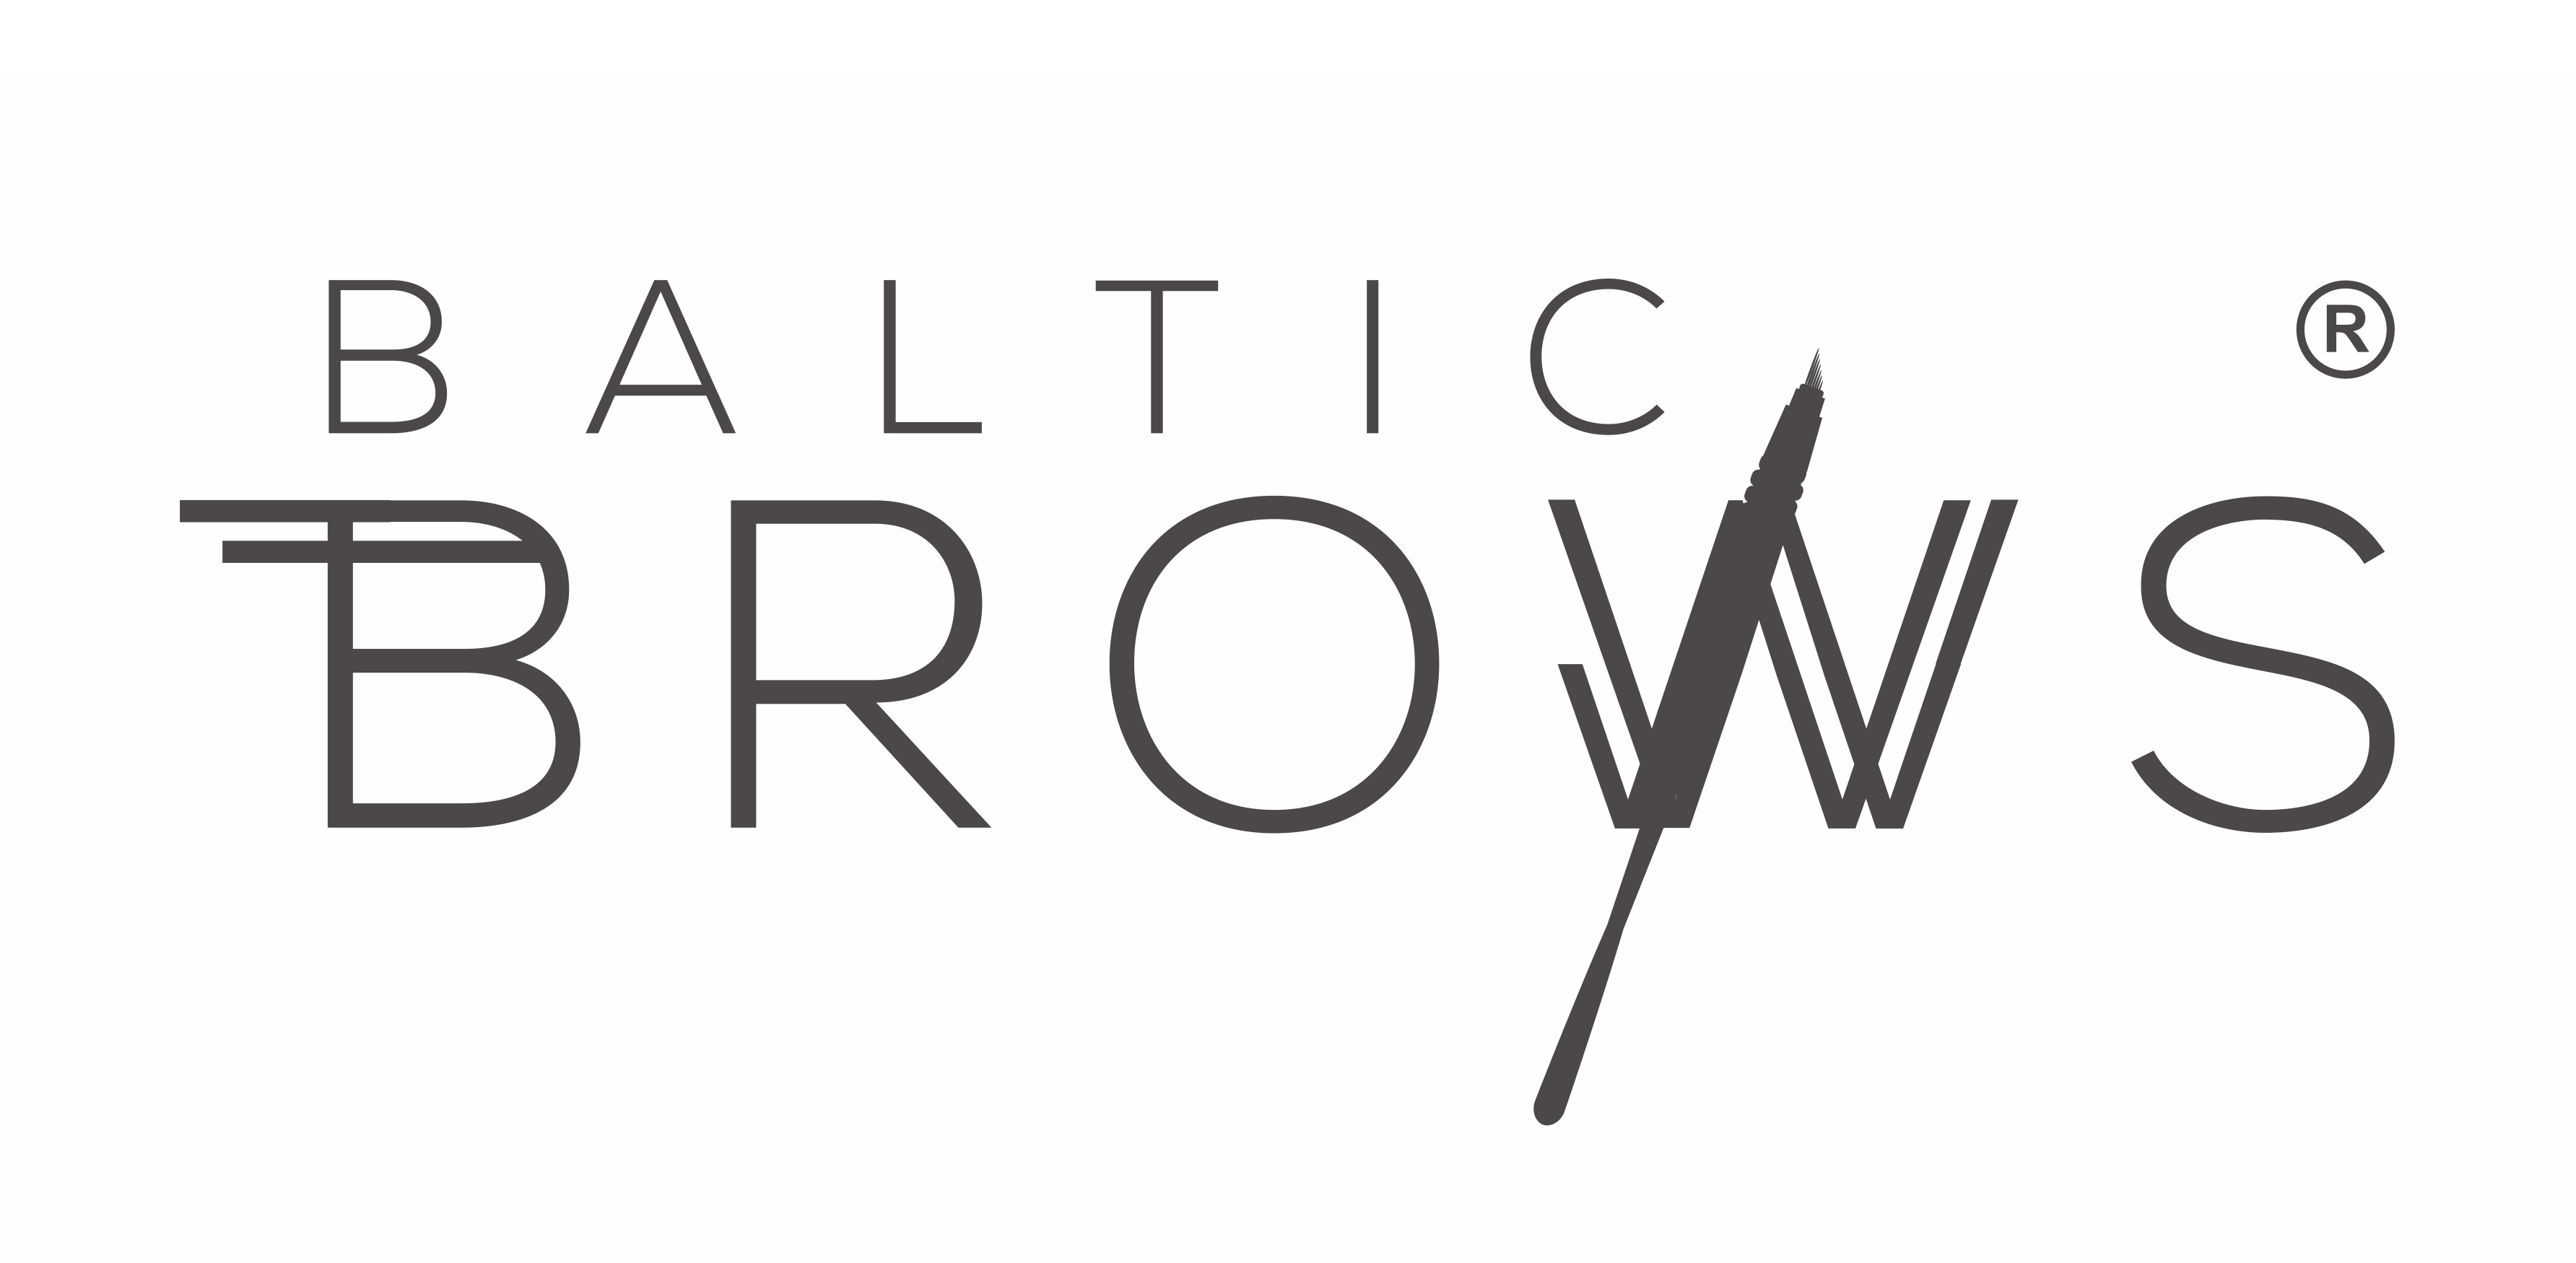 shopbalticbrows.com